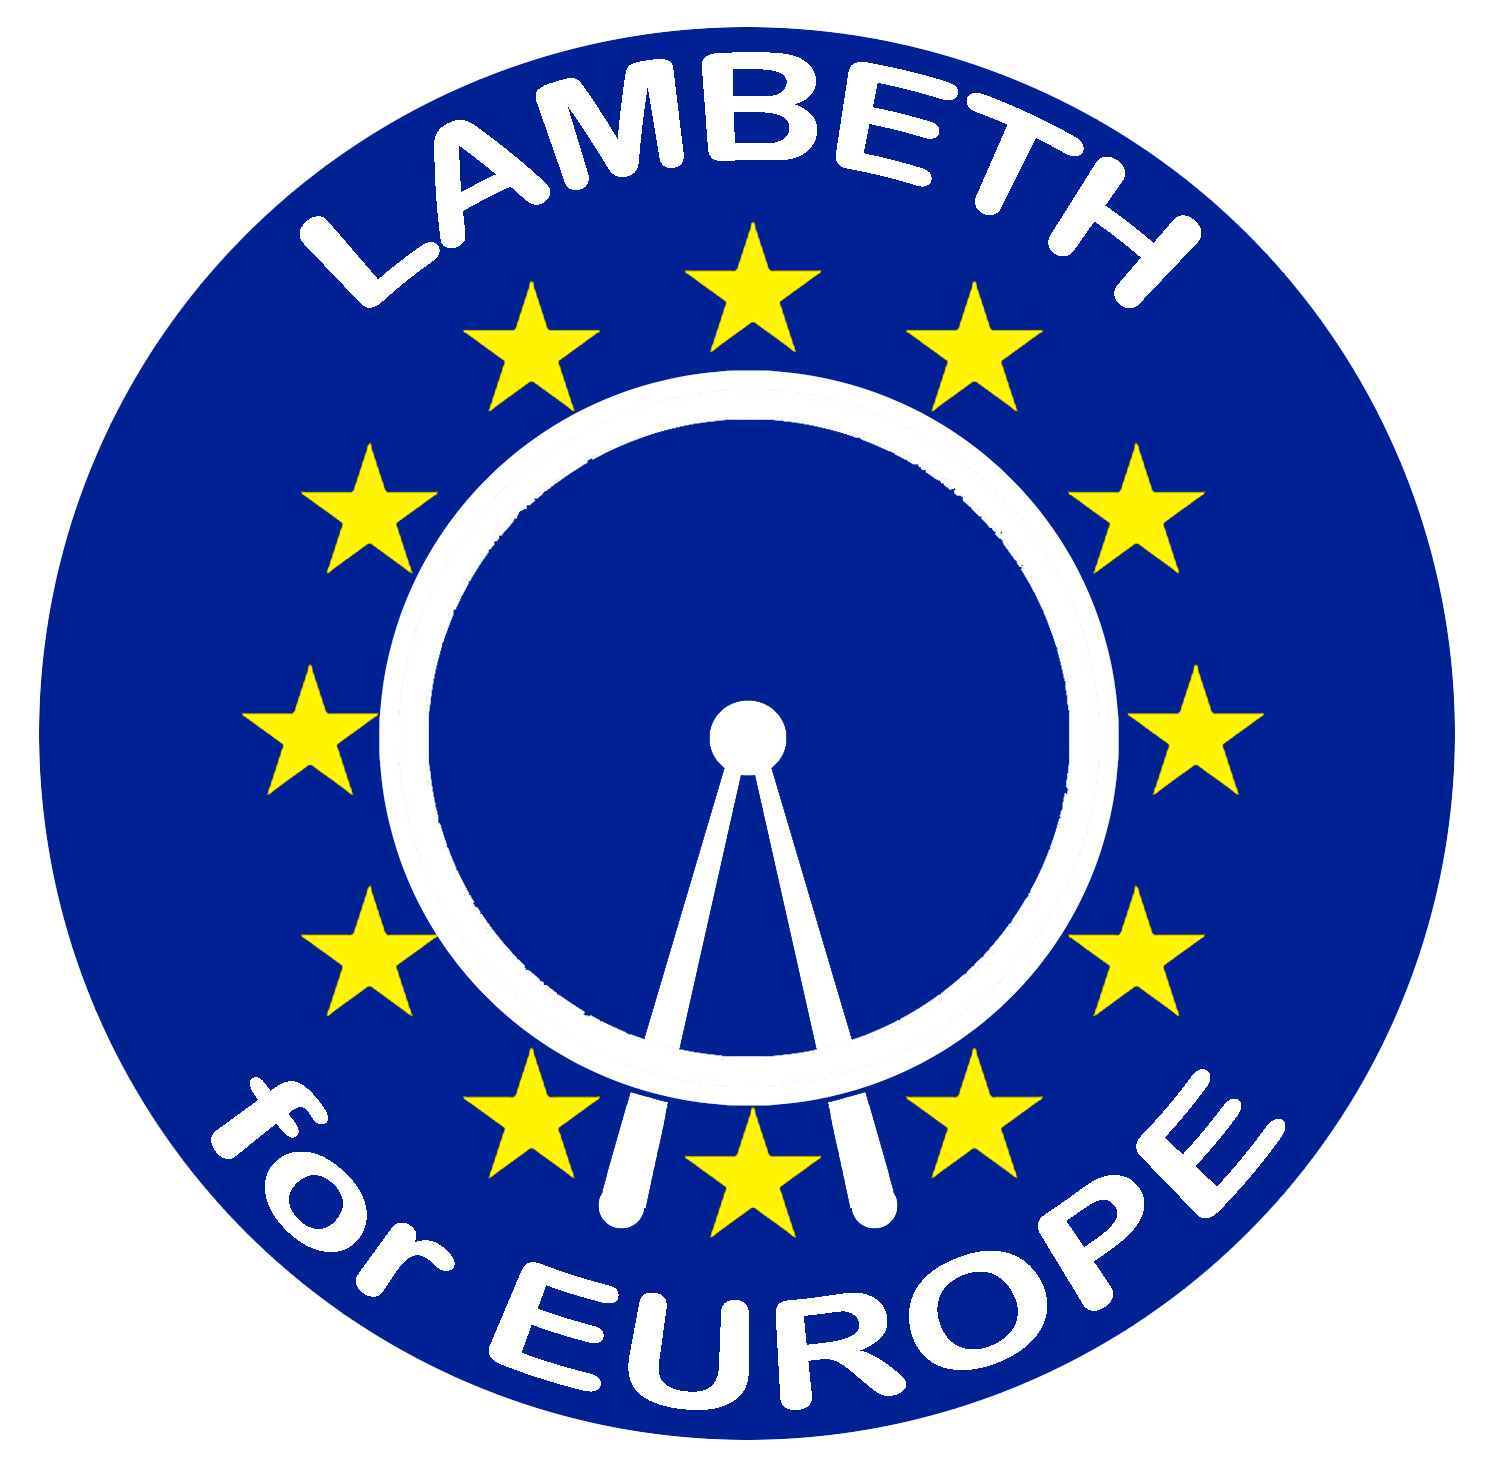 Lambeth for Europe